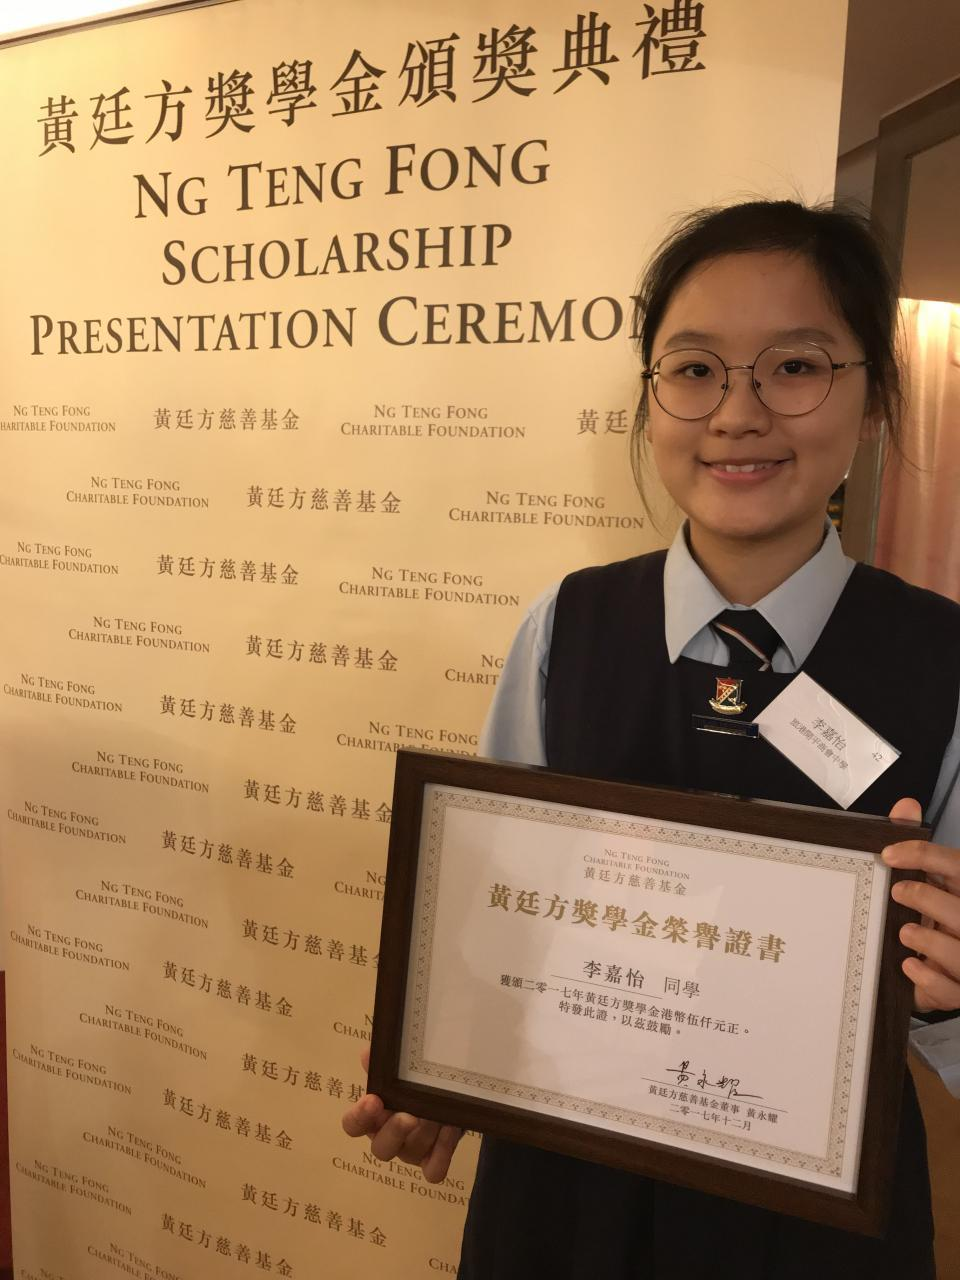 Recipient of Ng Teng Fong Scholarship – 5A Lee Ka Yi | Hoi